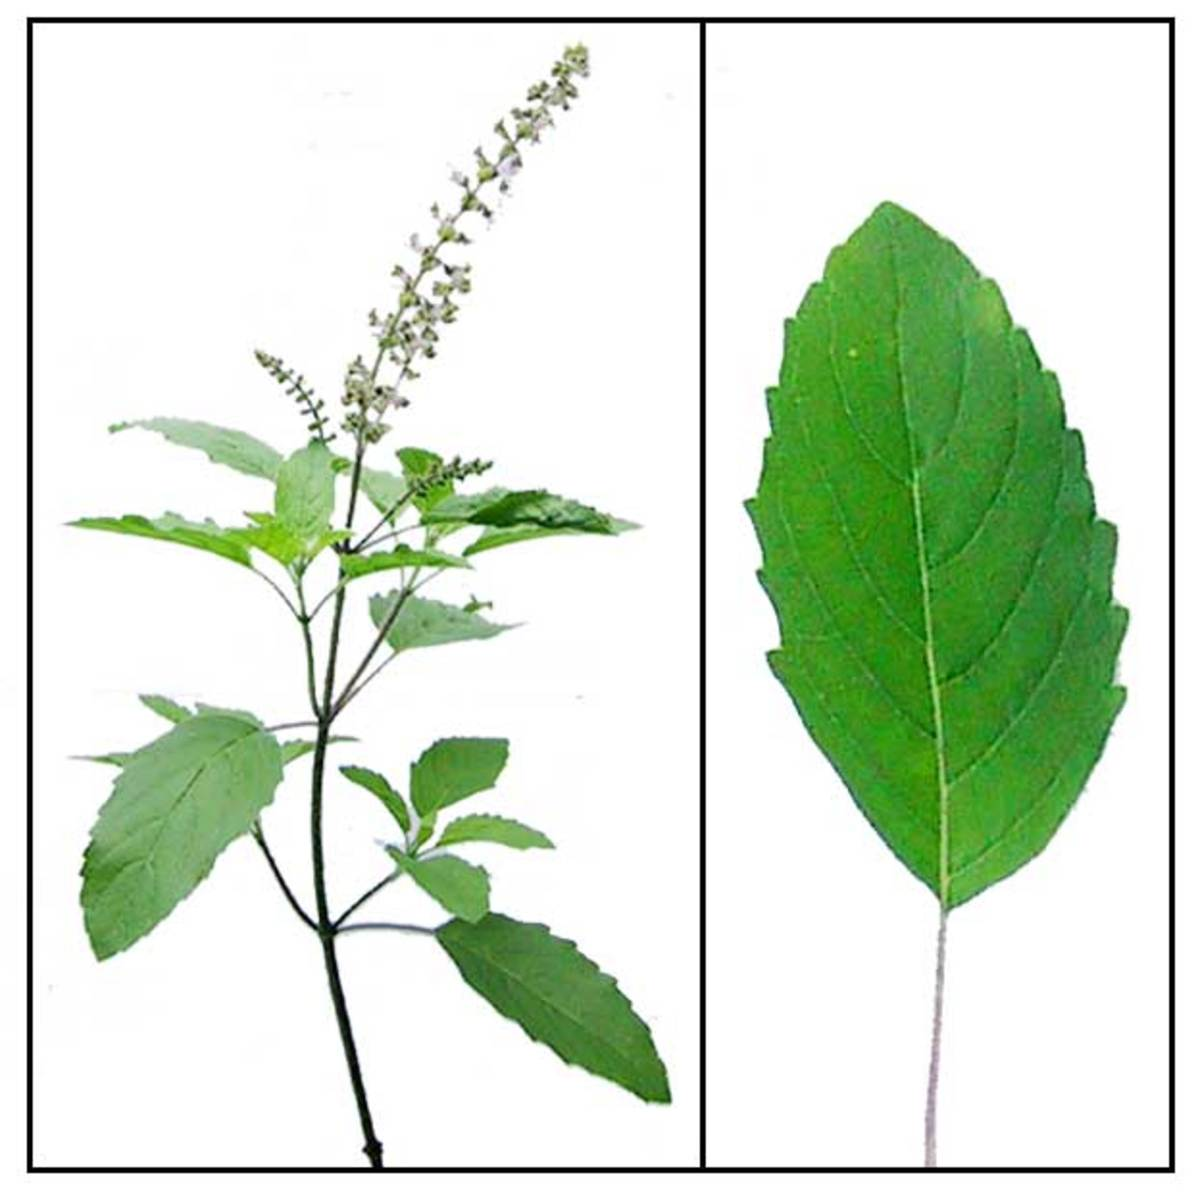 Holy Basil or Tulsi leaf and plant.